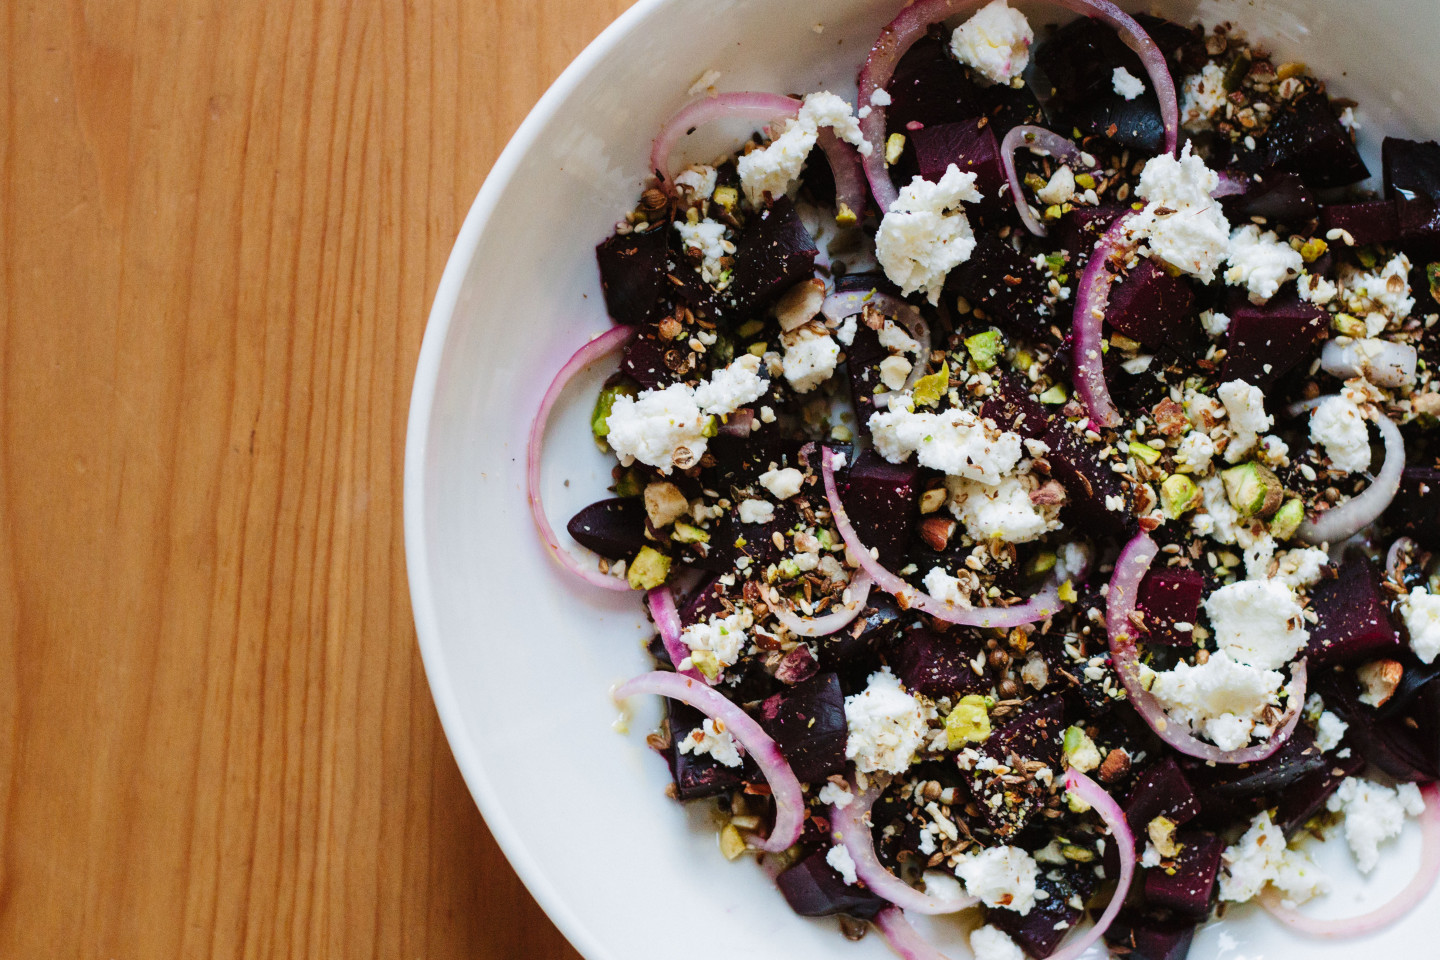 beet salad with goat cheese and dukkah